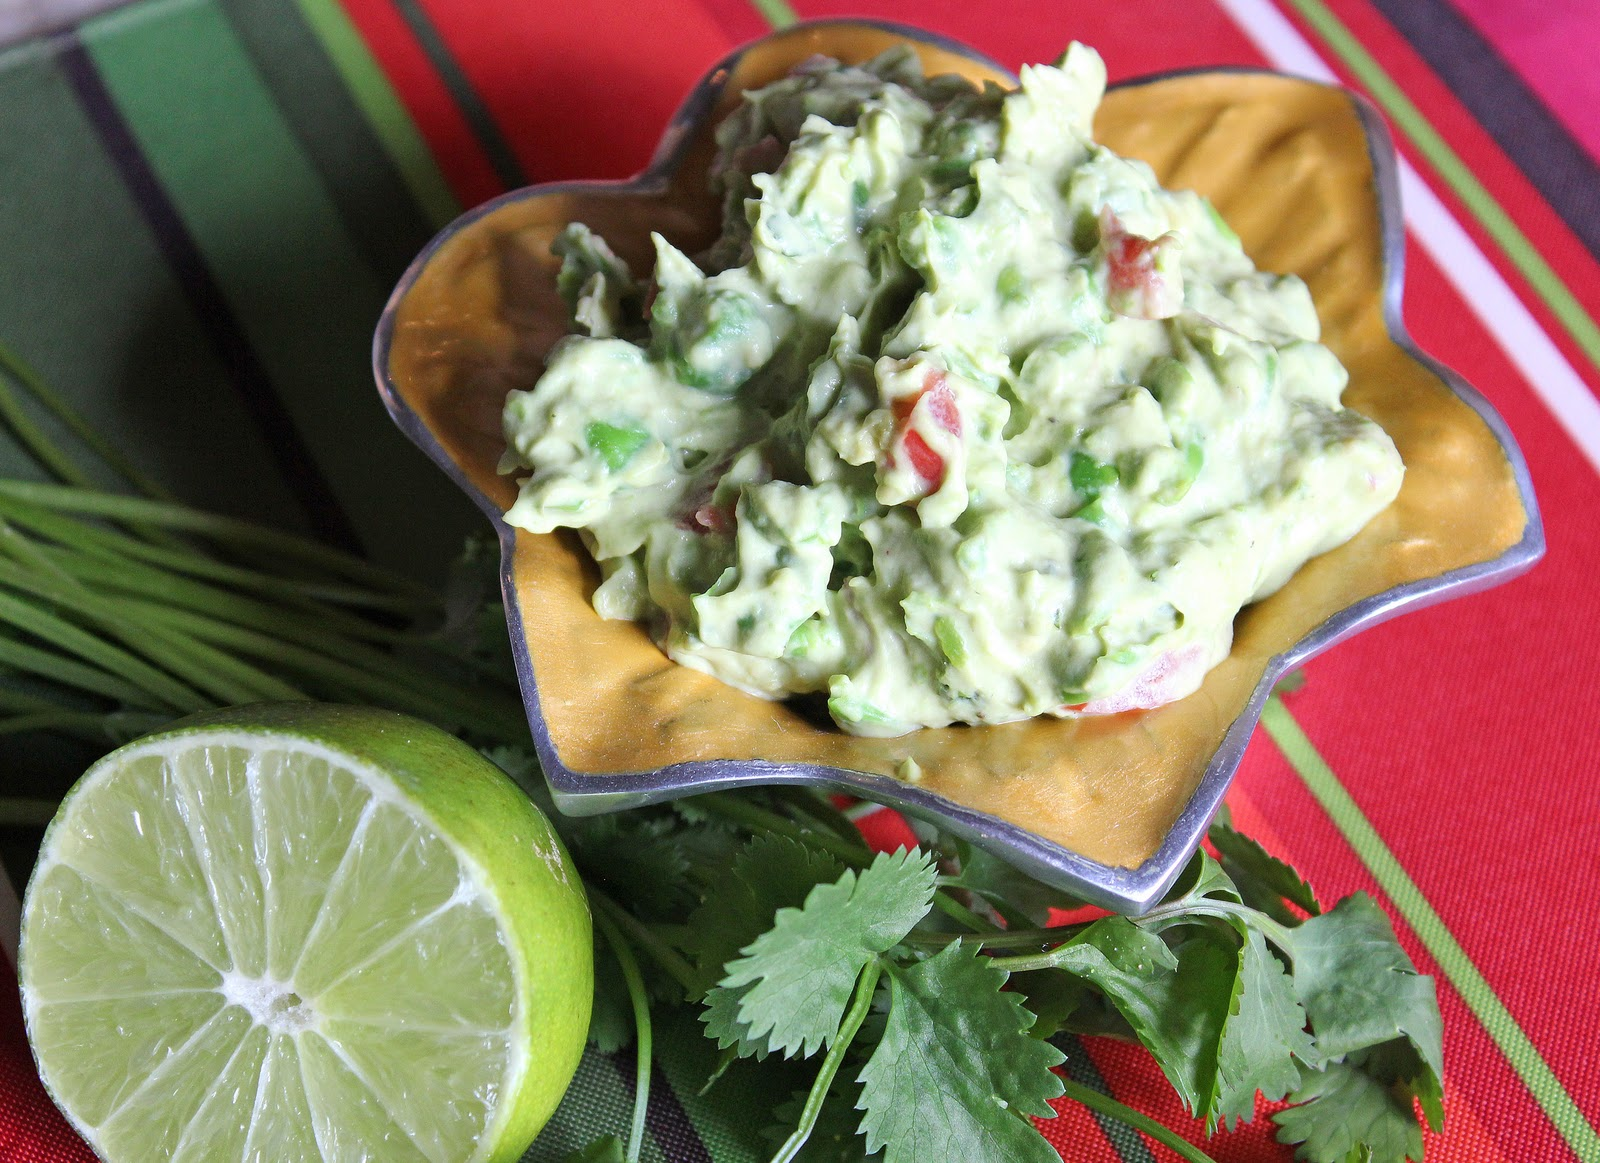 Ambition's Kitchen: HEALTHY CREAMY GUACAMOLE DIP